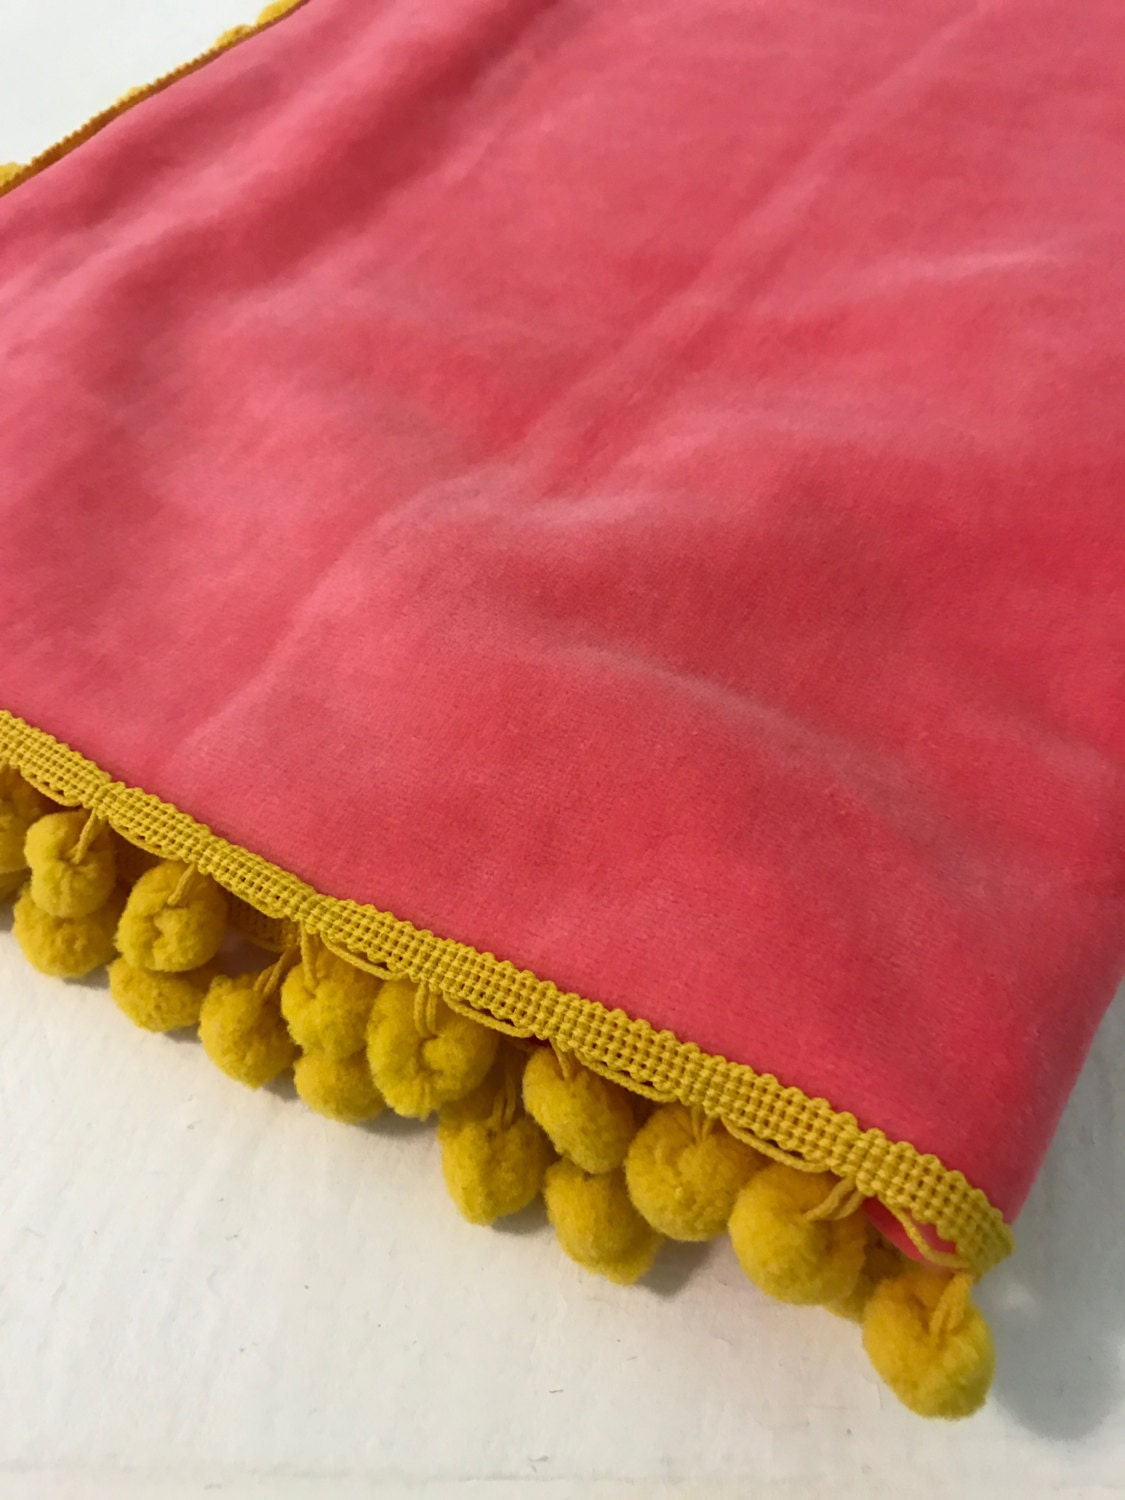 Baby Blanket / Organic Cotton Velour / Coral / Yellow / Pink / Toddler / Girl / Warm / Shower Gift / Swaddle / Nursery Décor / Crib / Winter